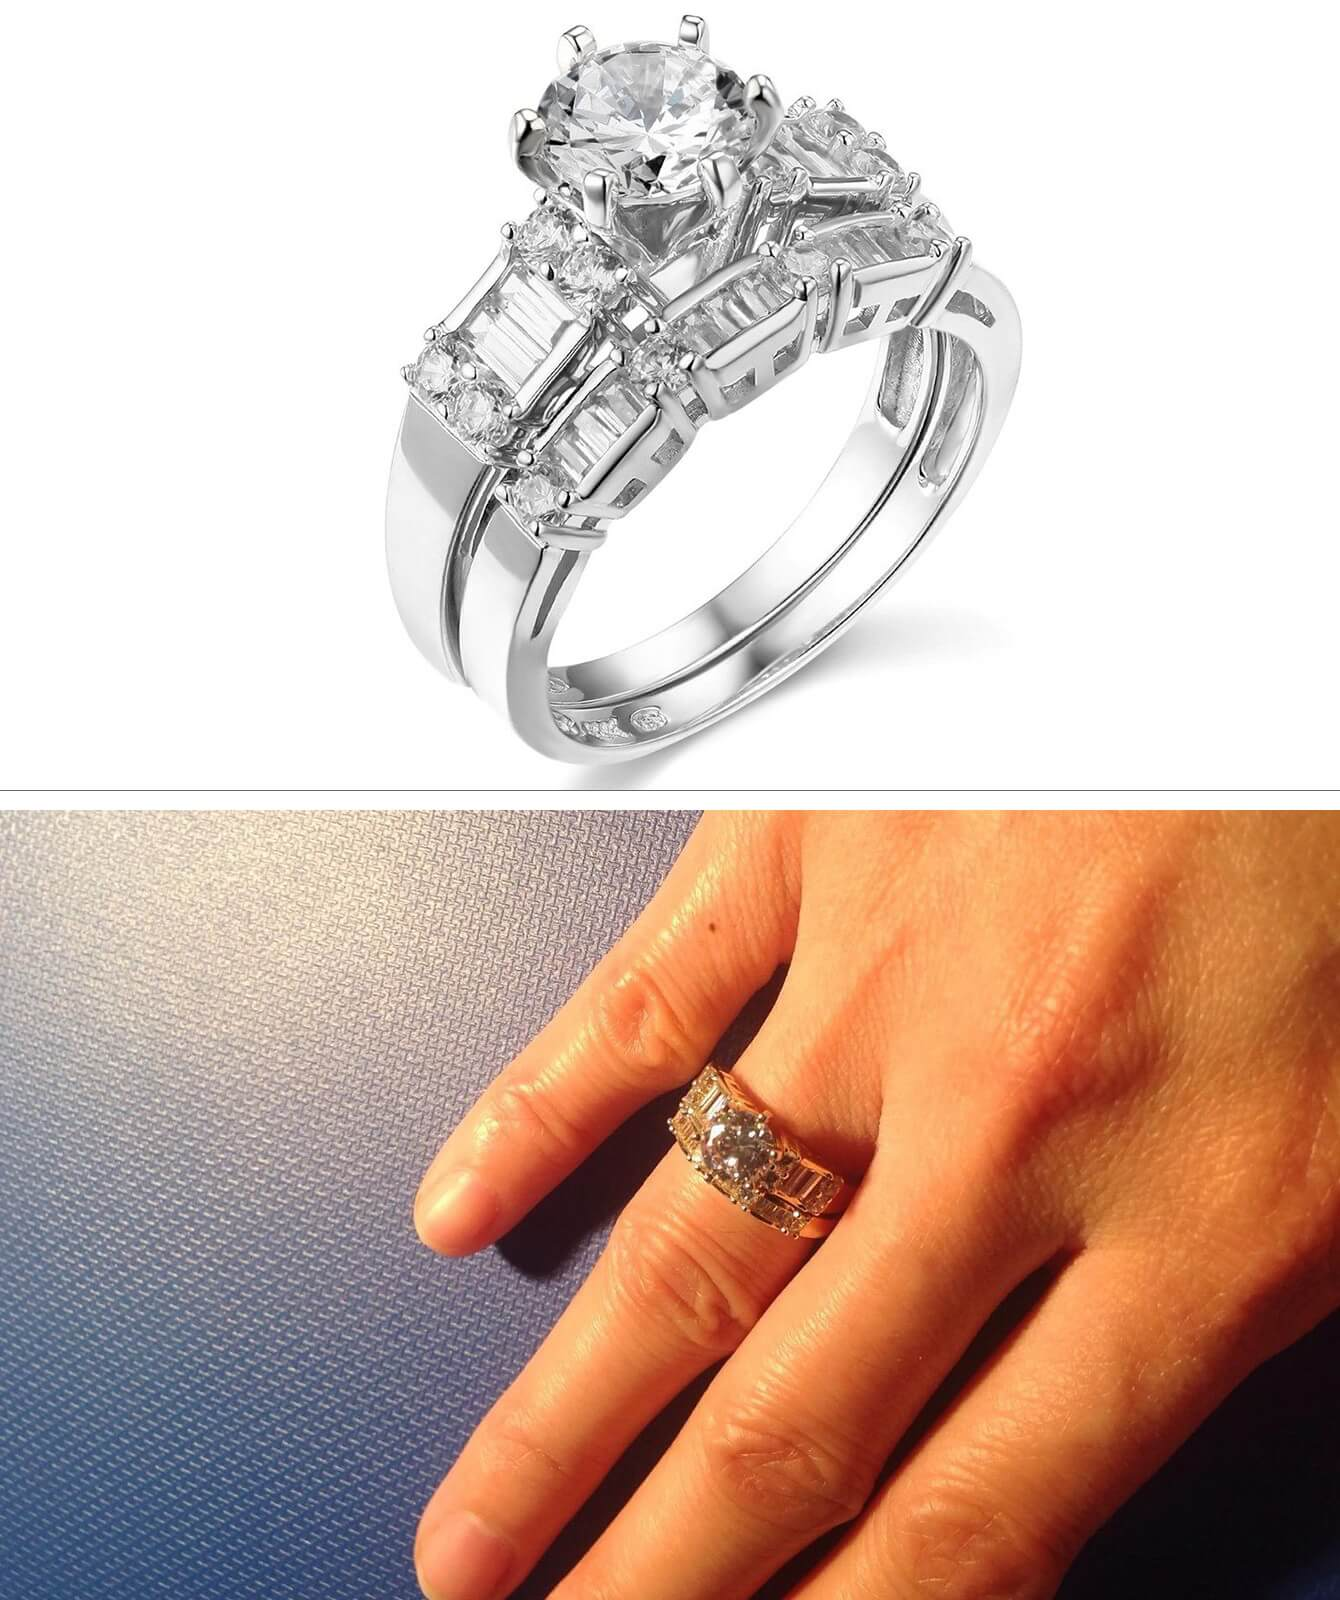 co adorned pin the rings ring a engagement diamond perfect gabriel with wedding halo stunning platinum